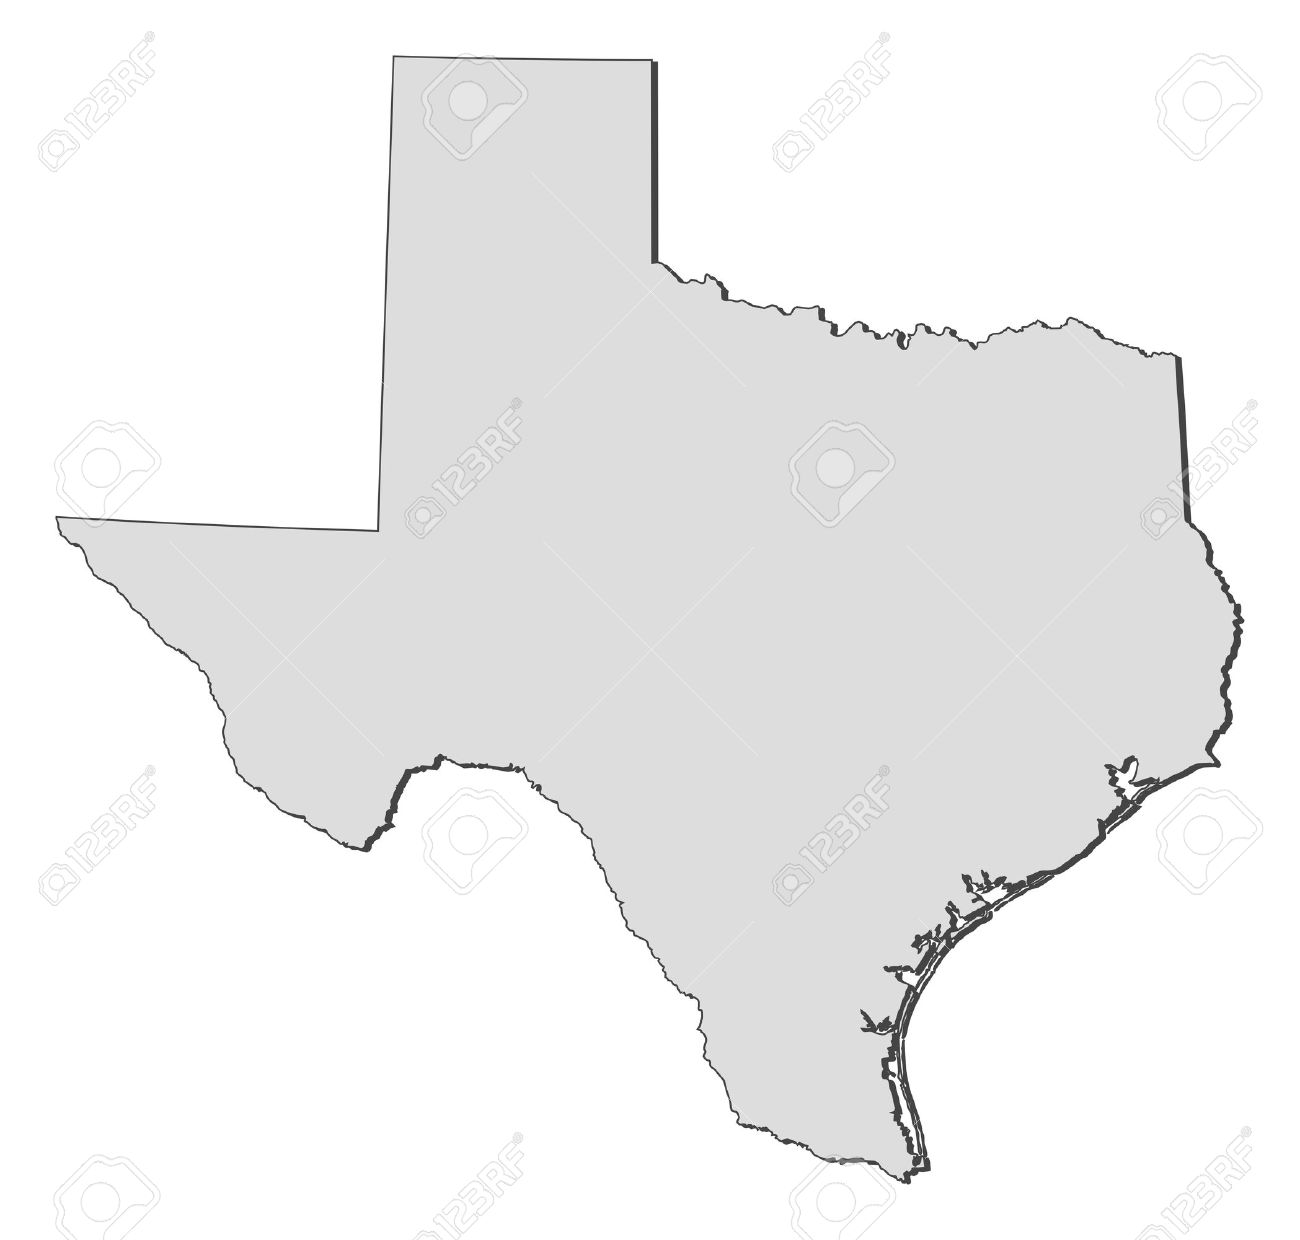 Map Of Texas A State Of United States Royalty Free Cliparts - Mapa texas